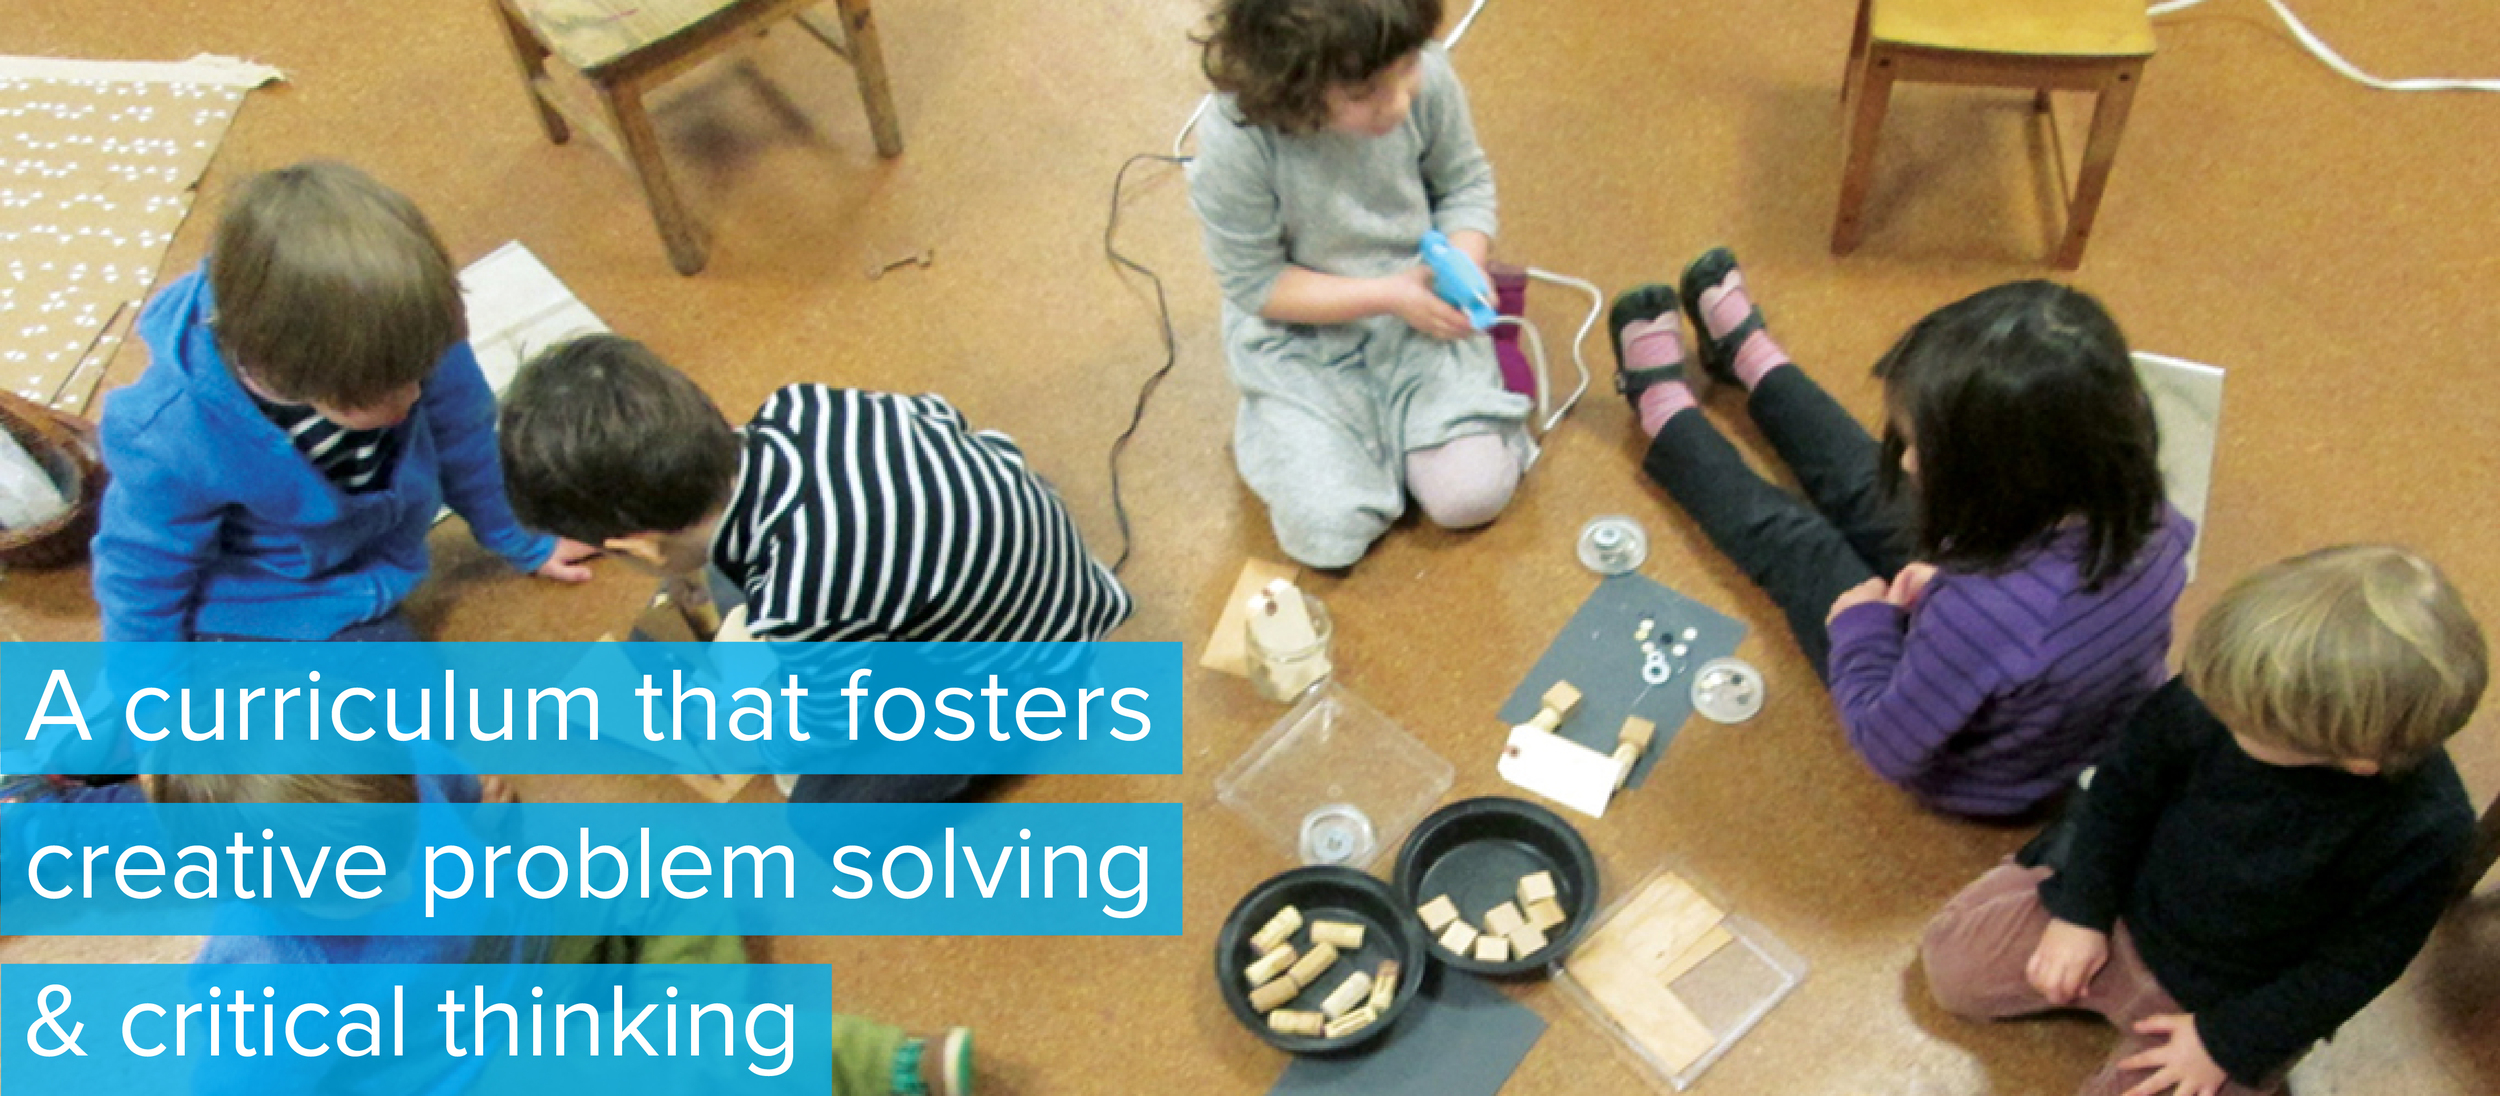 Red Hook Playgroup:  A curriculum that fosters creative problem solving & critical thinking